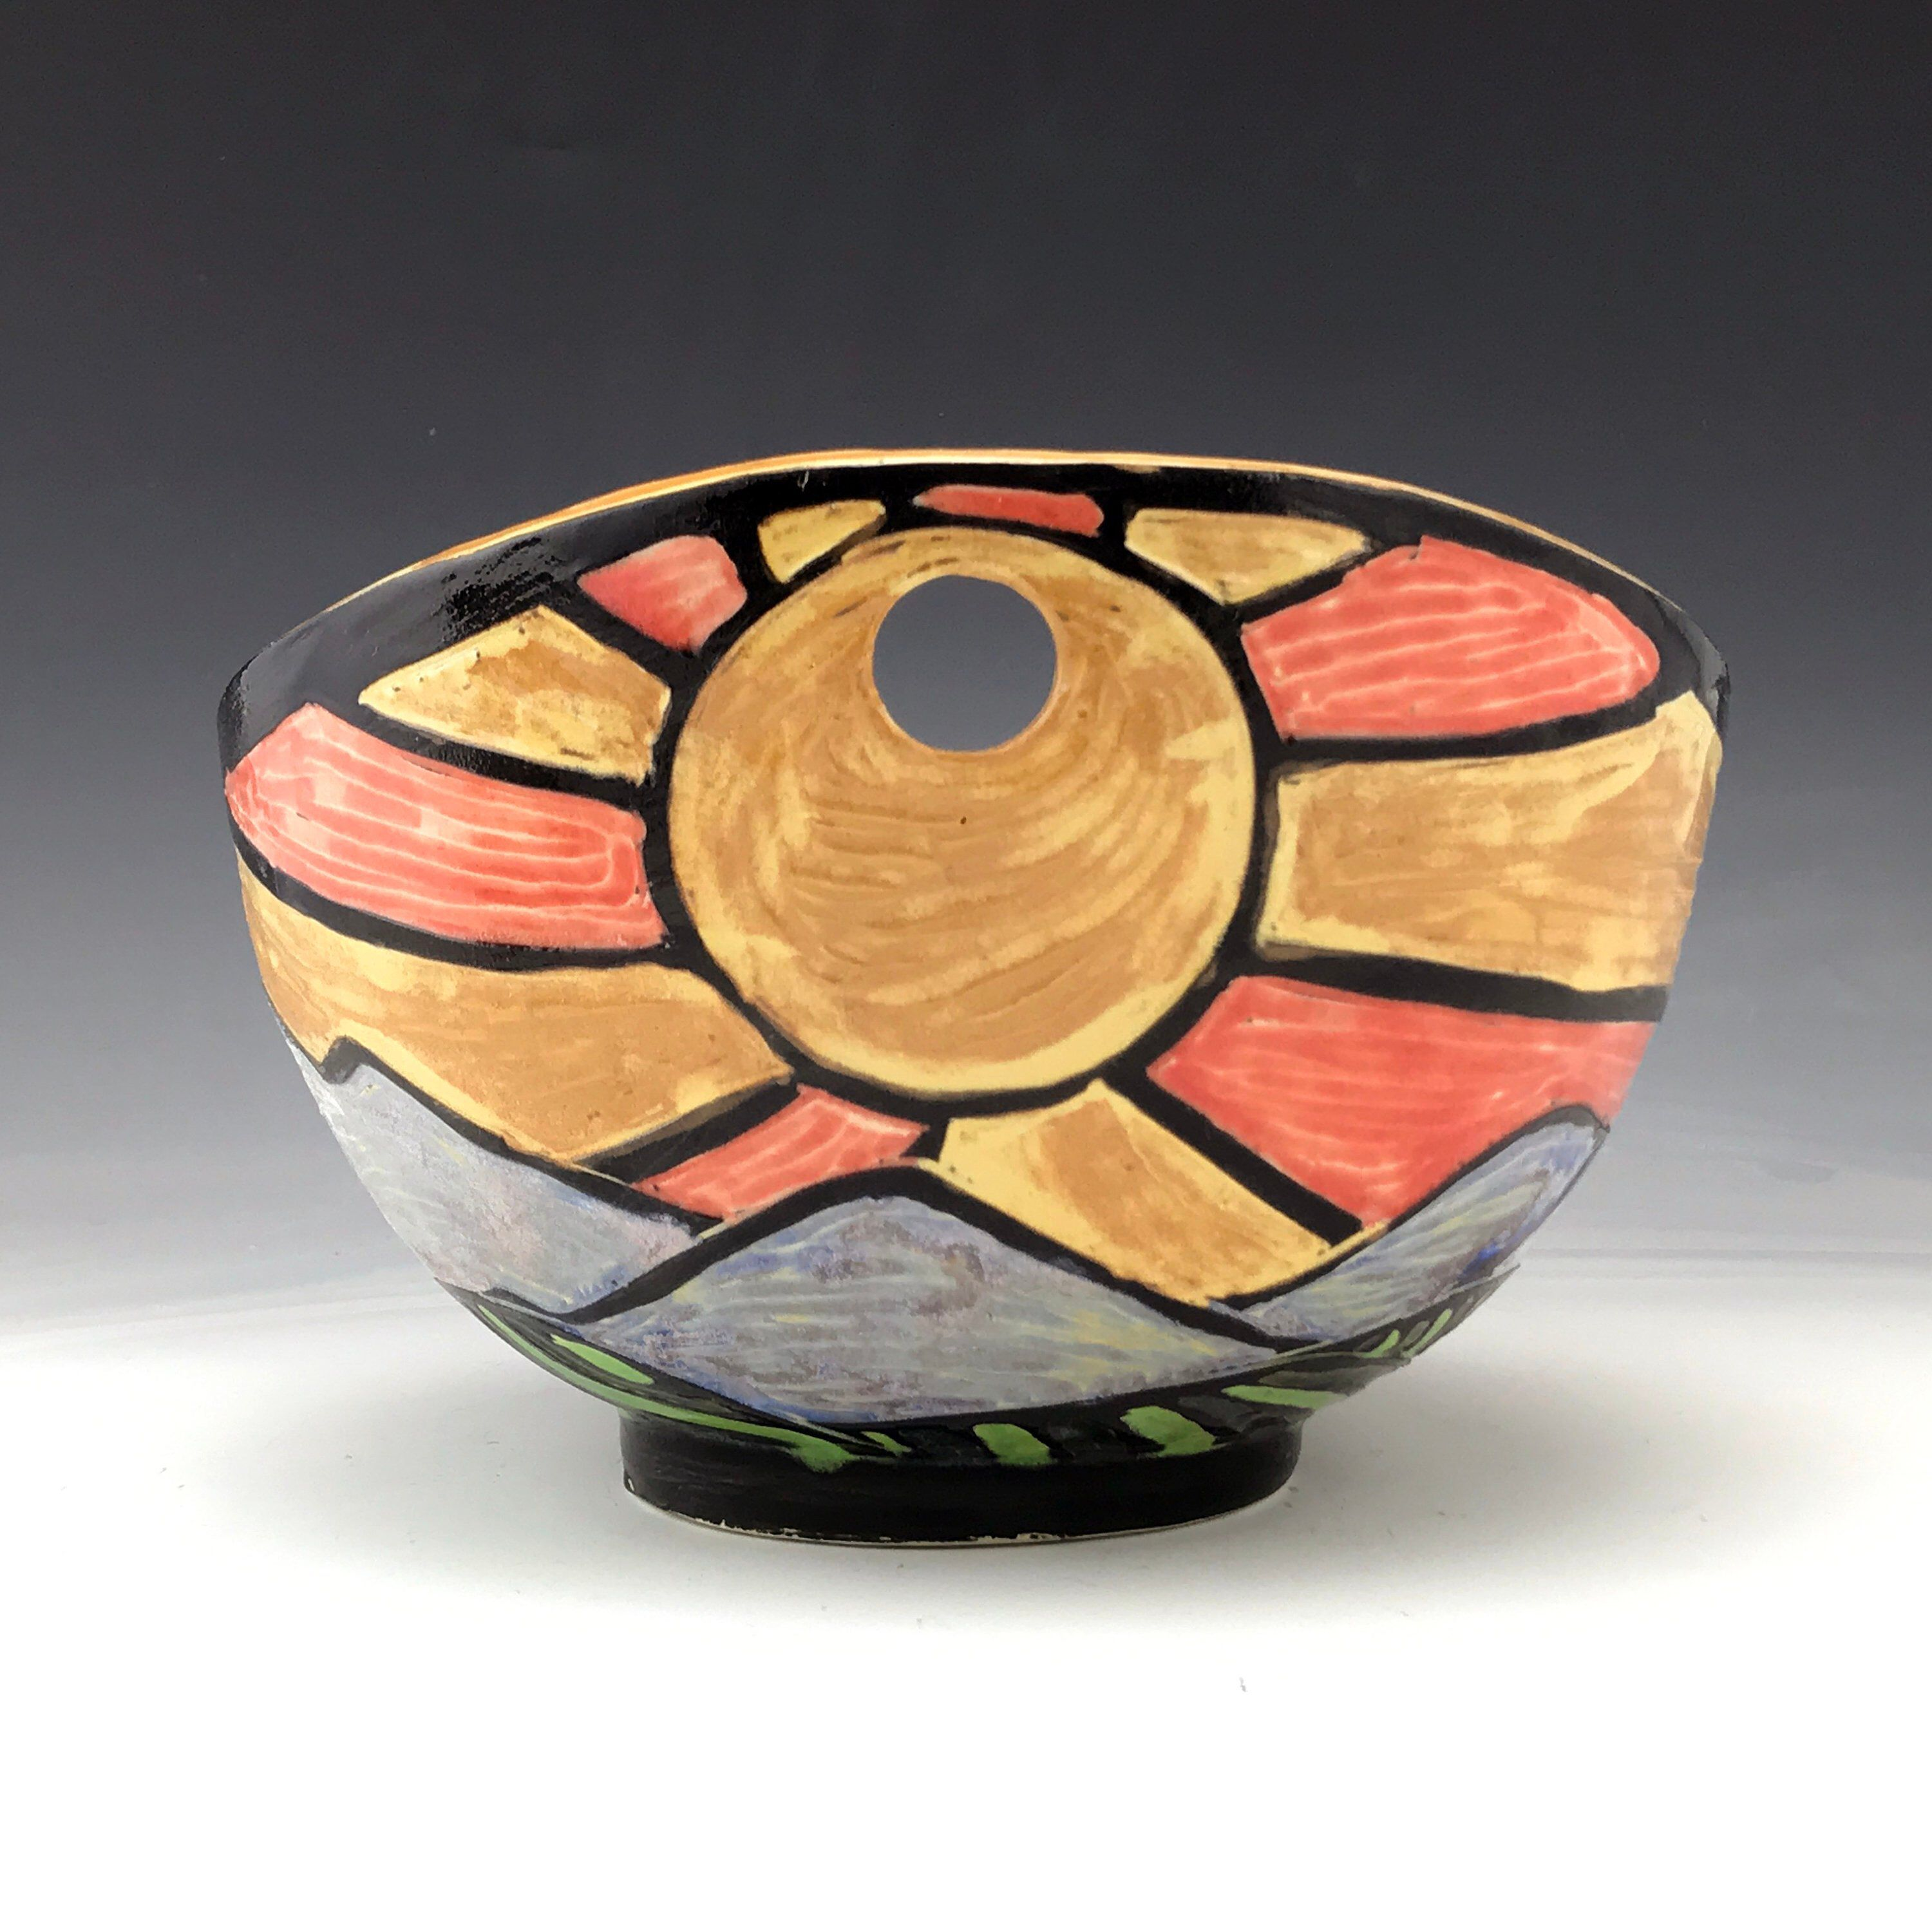 Handmade Sgraffito Ceramic Sunrise Serving Bowl In Gold With Images Handmade Pottery Colorful Ceramics Handmade